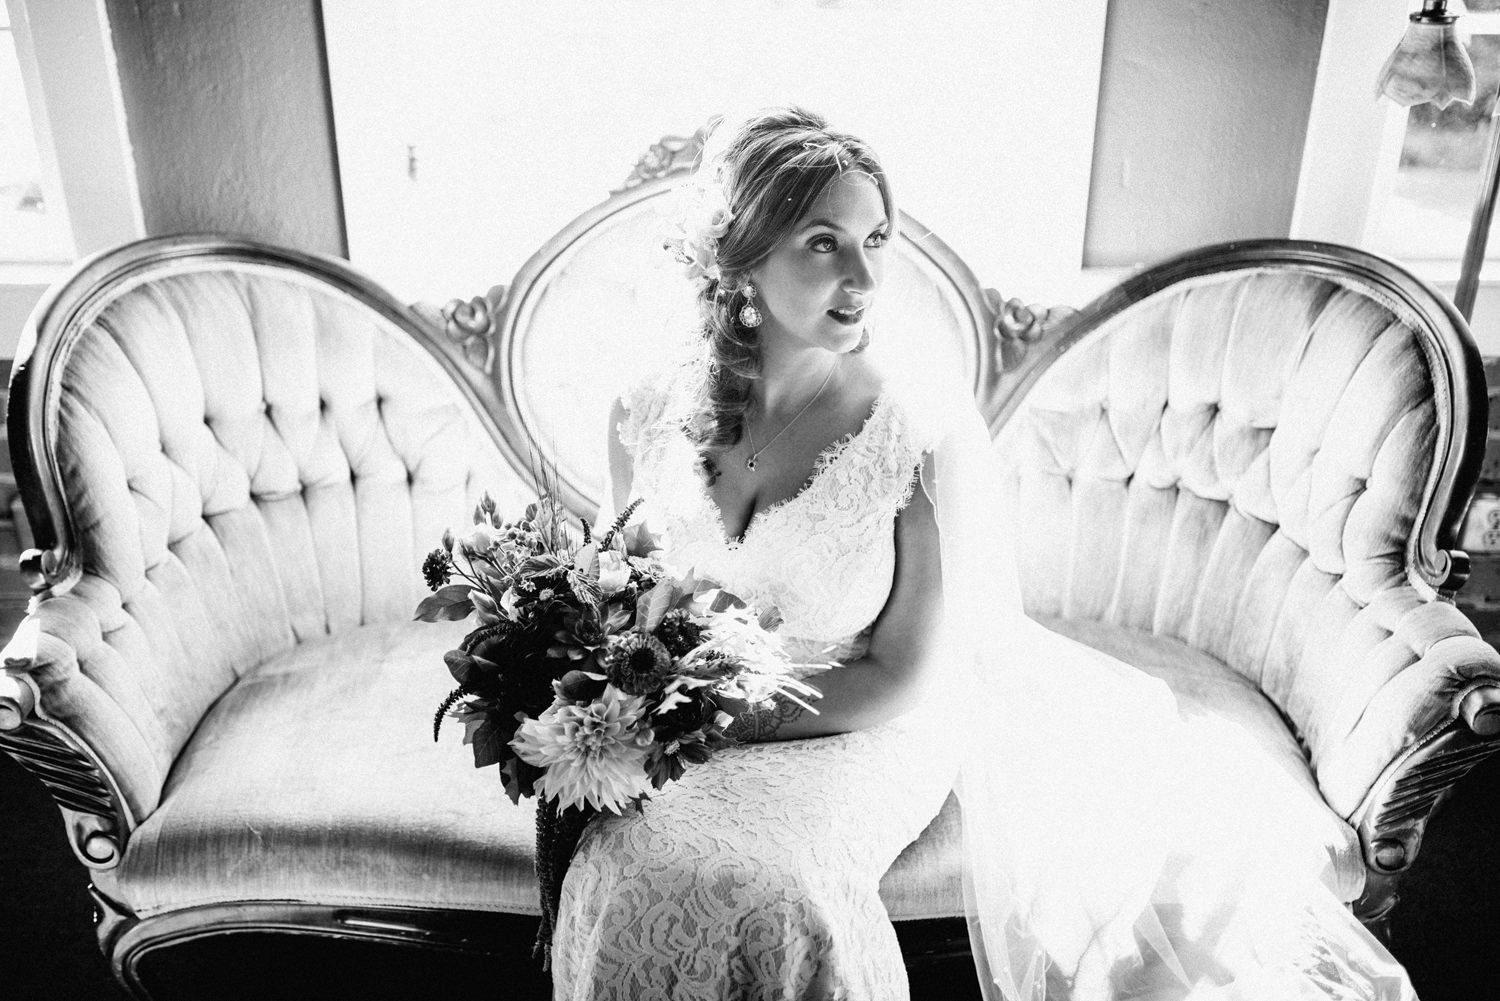 ryan-flynn-best-wedding-photography-2015-seattle-film-photographer-0102.JPG